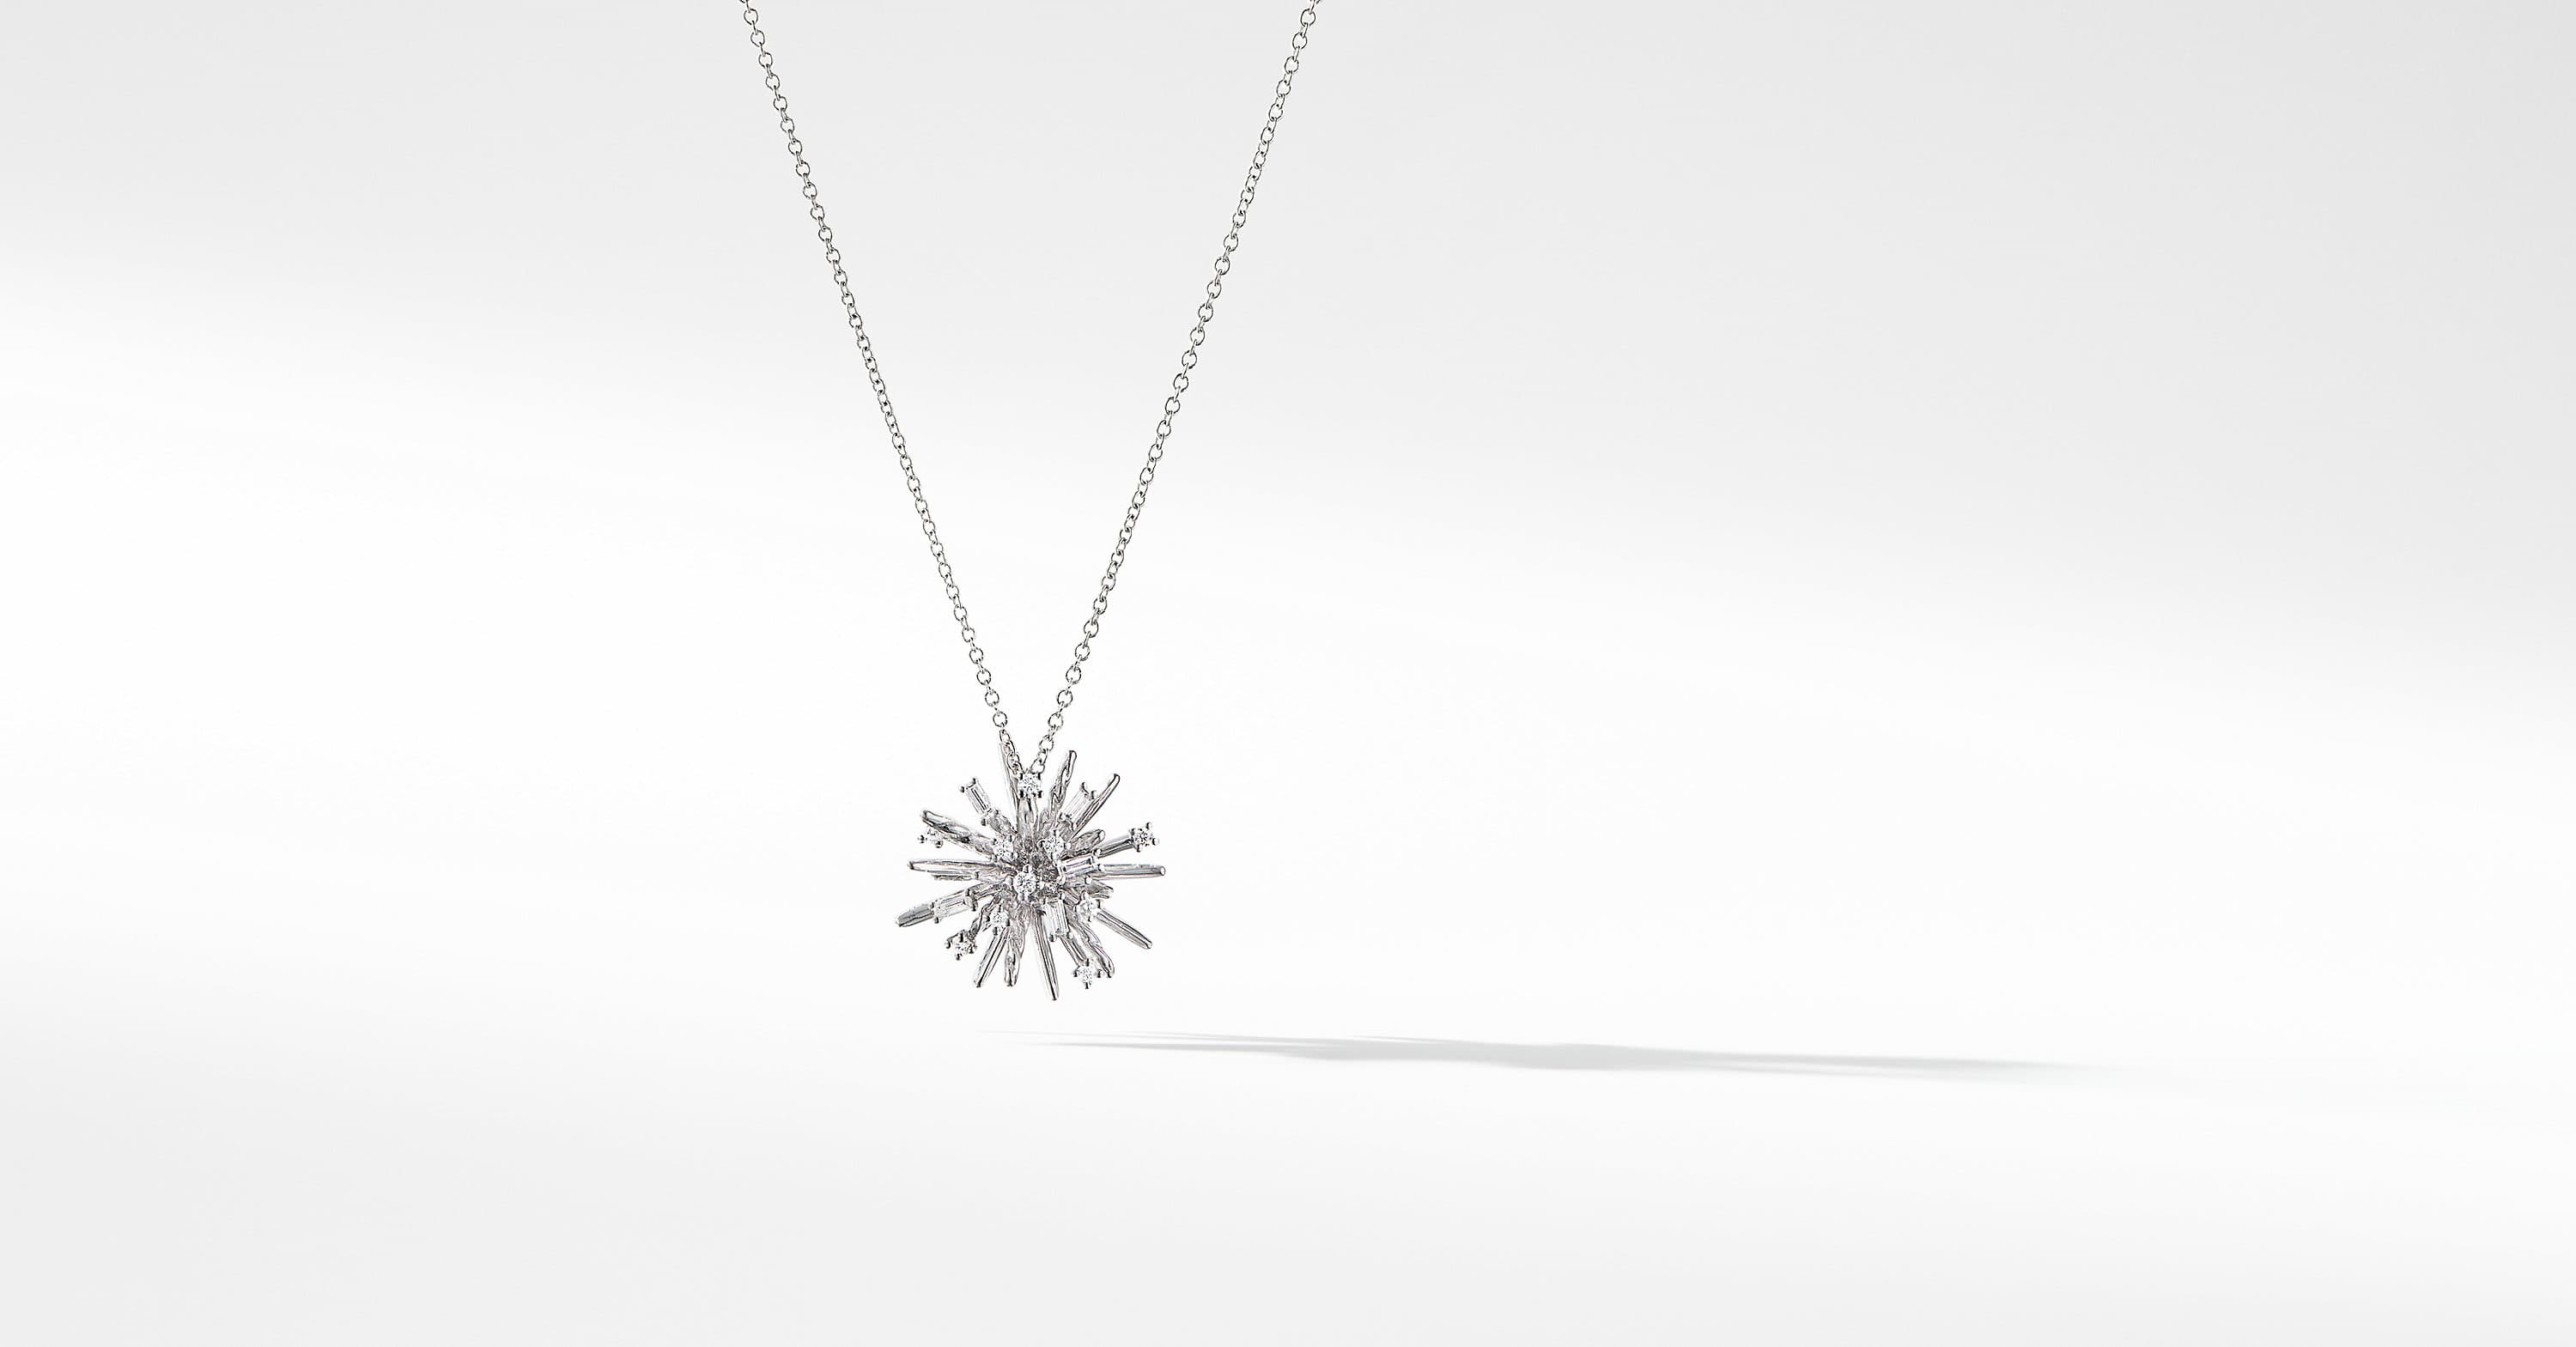 Collier à petit pendentif Supernova en or blanc 18 carats et diamants